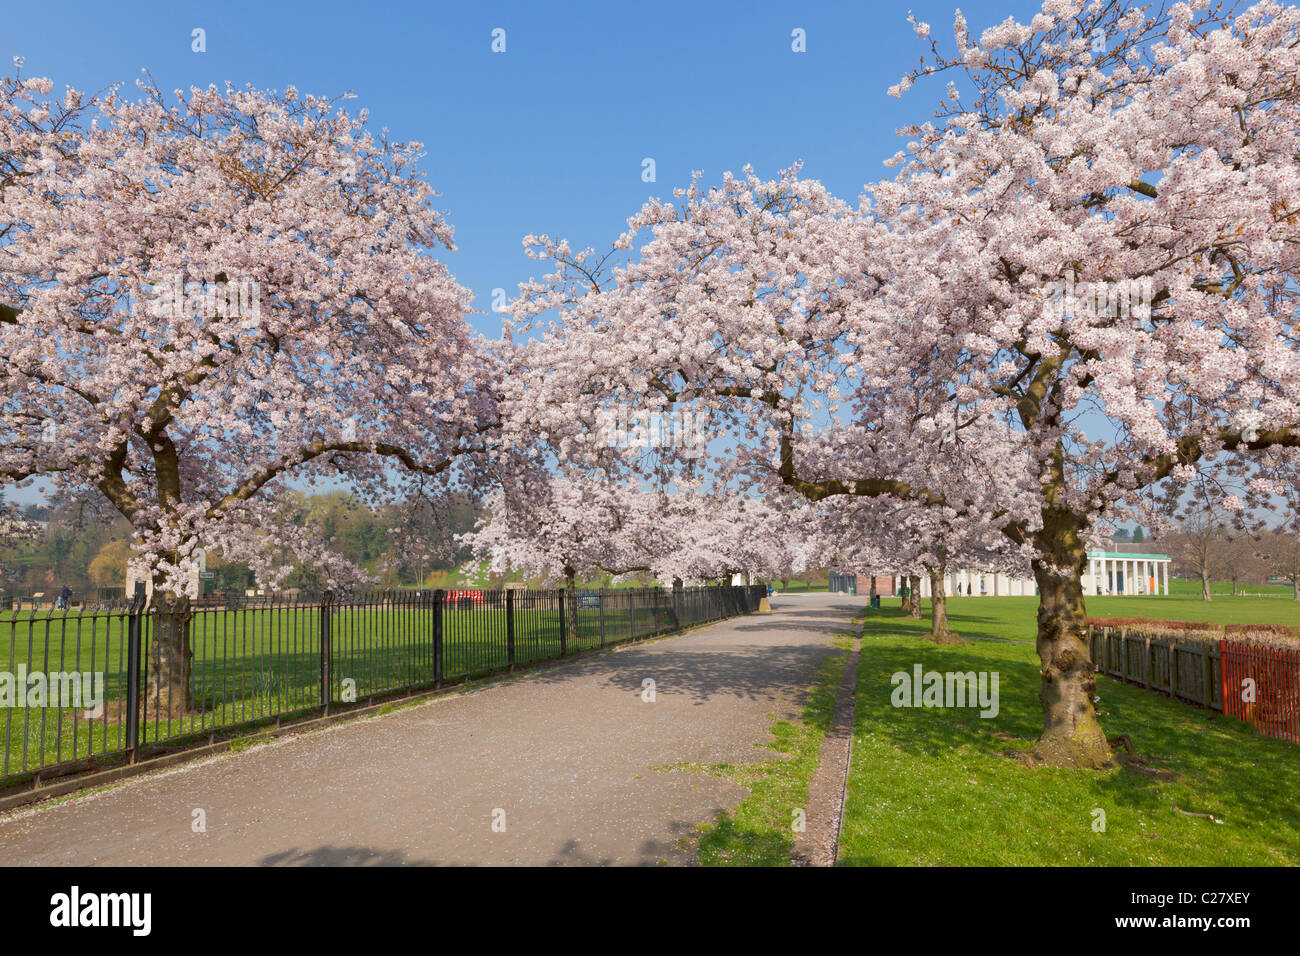 Cherry blossom on trees in Nottingham University park campus Nottingham Nottinghamshire England GB UK EU Europe - Stock Image